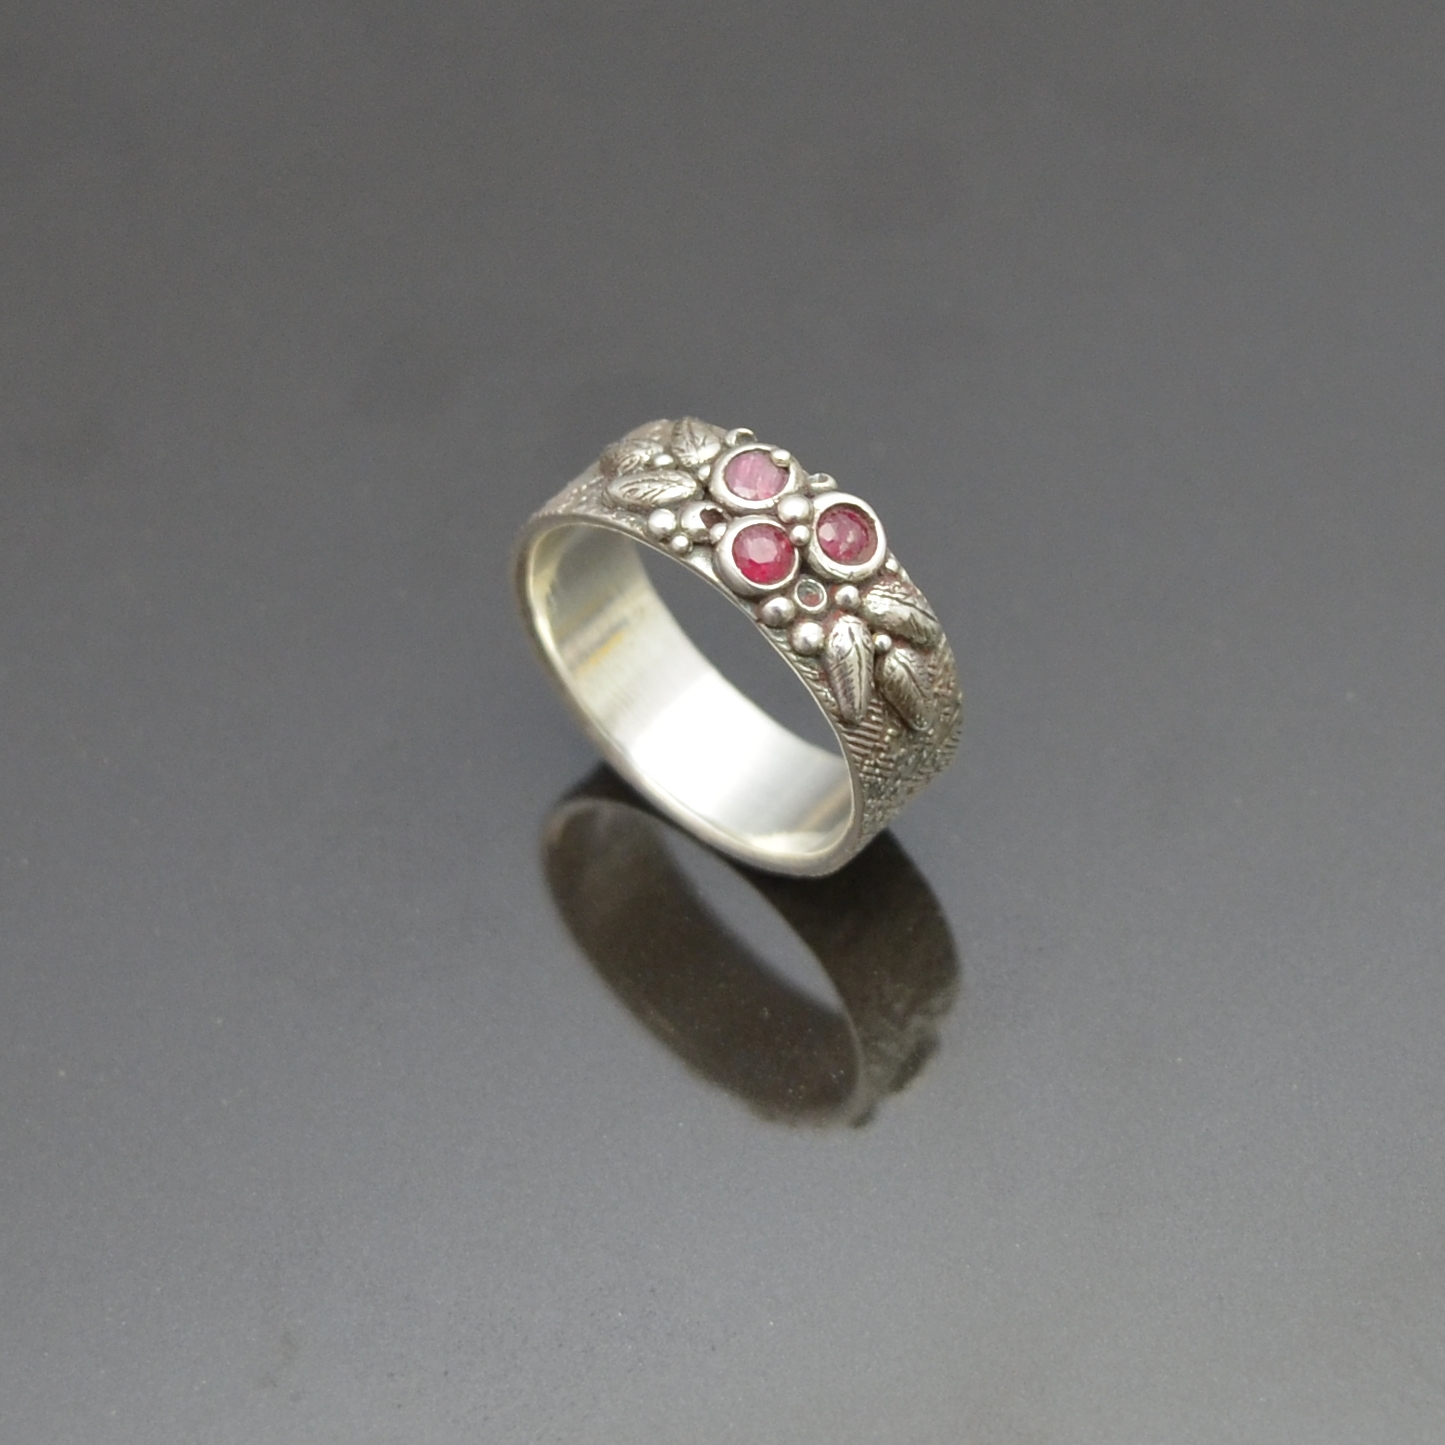 Woodland Berries Ring by Tracey Spurgin of Craftworx Jewellery Workshops